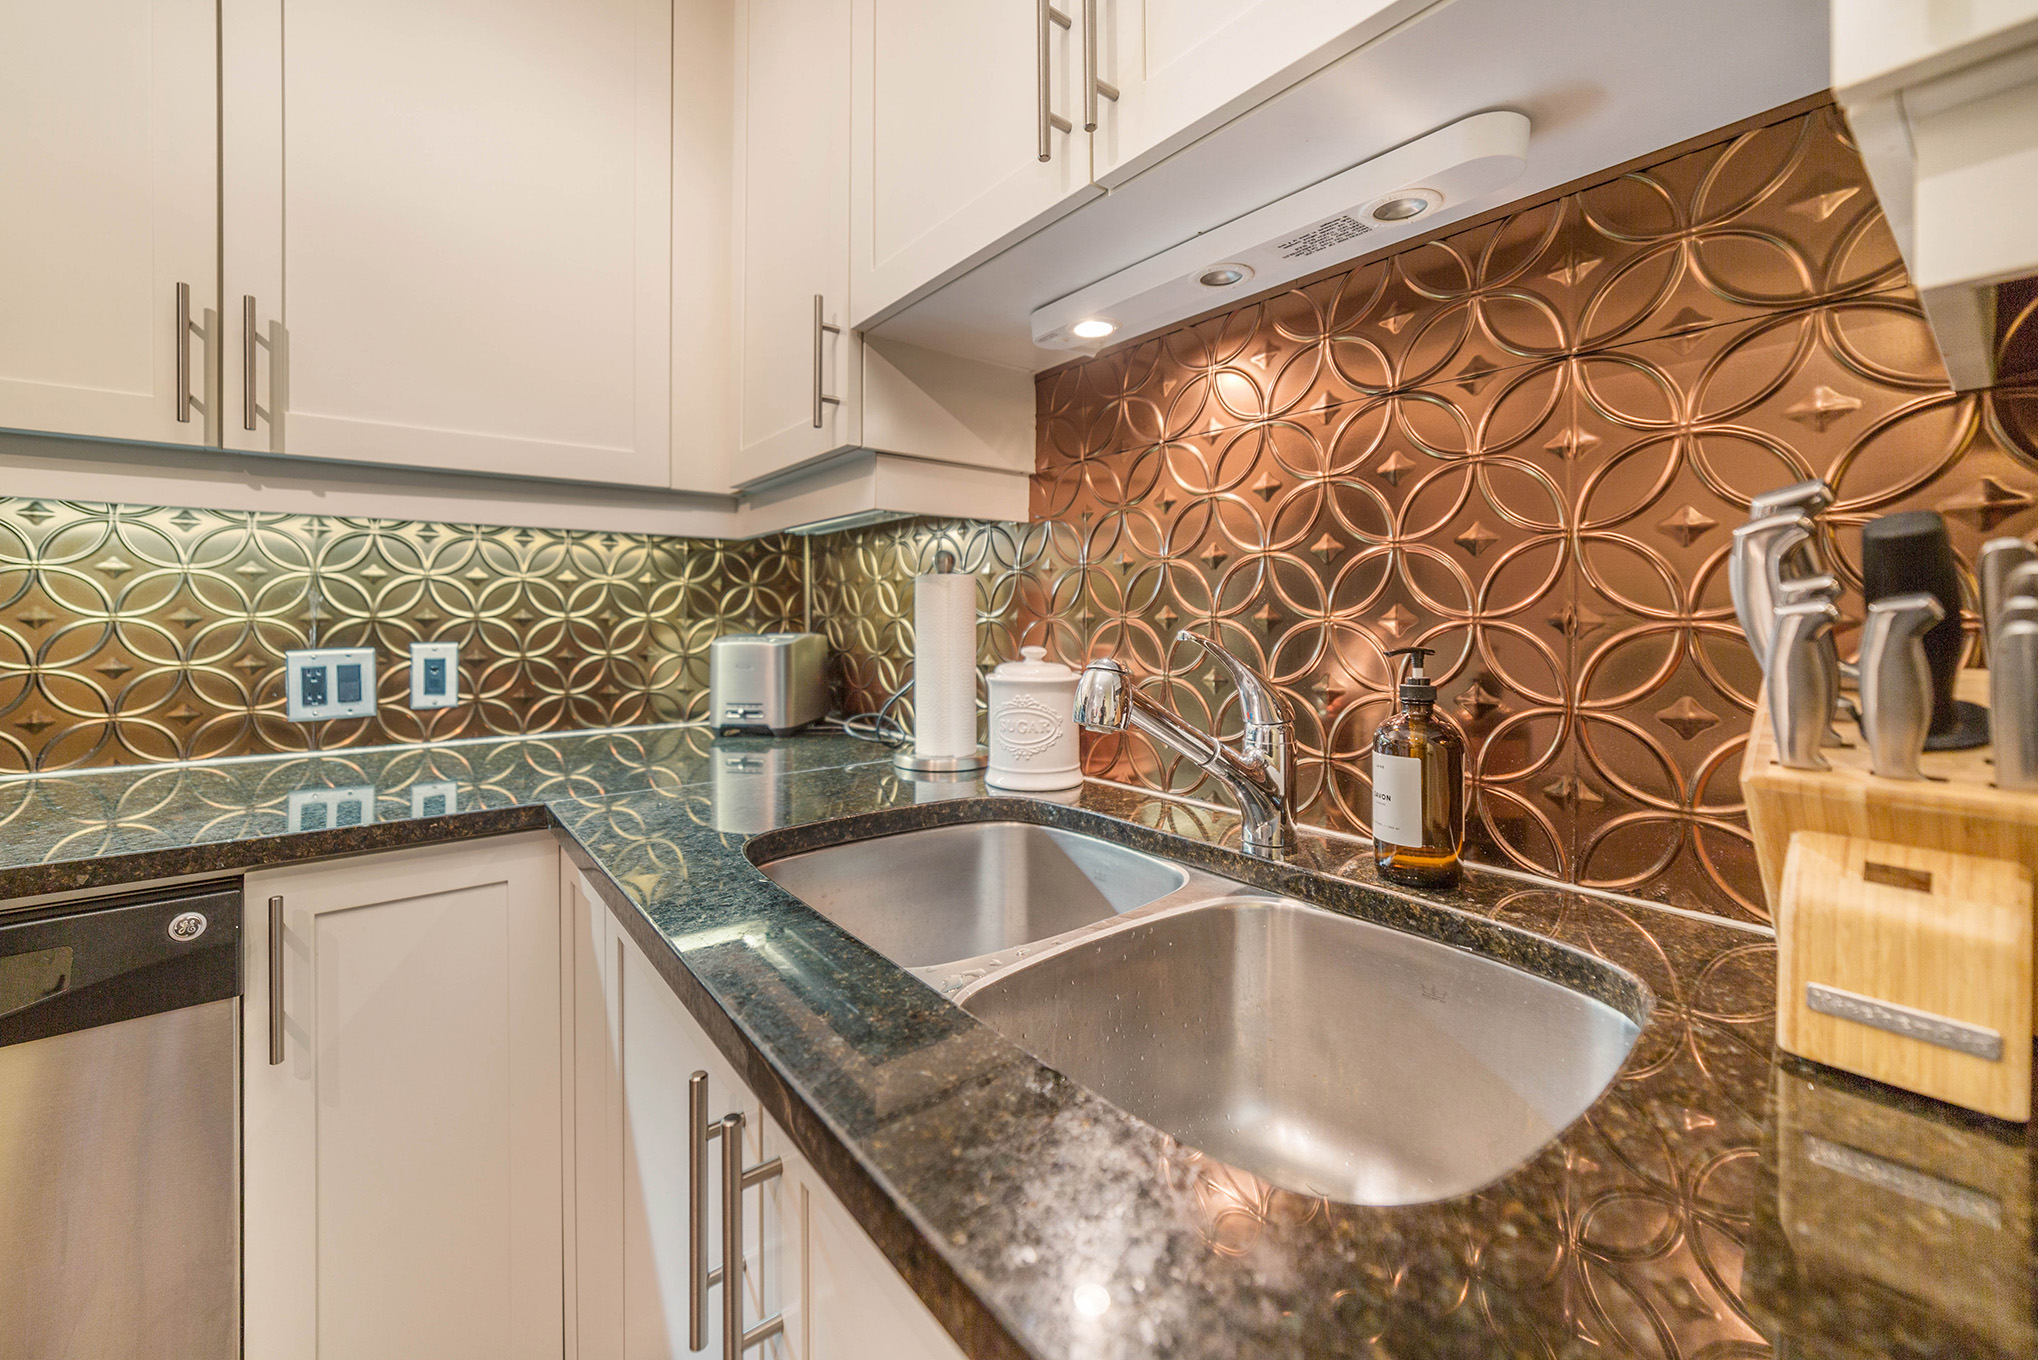 Large eat in kitchen with granite countertops, copper backsplash, and stainless steel appliances.